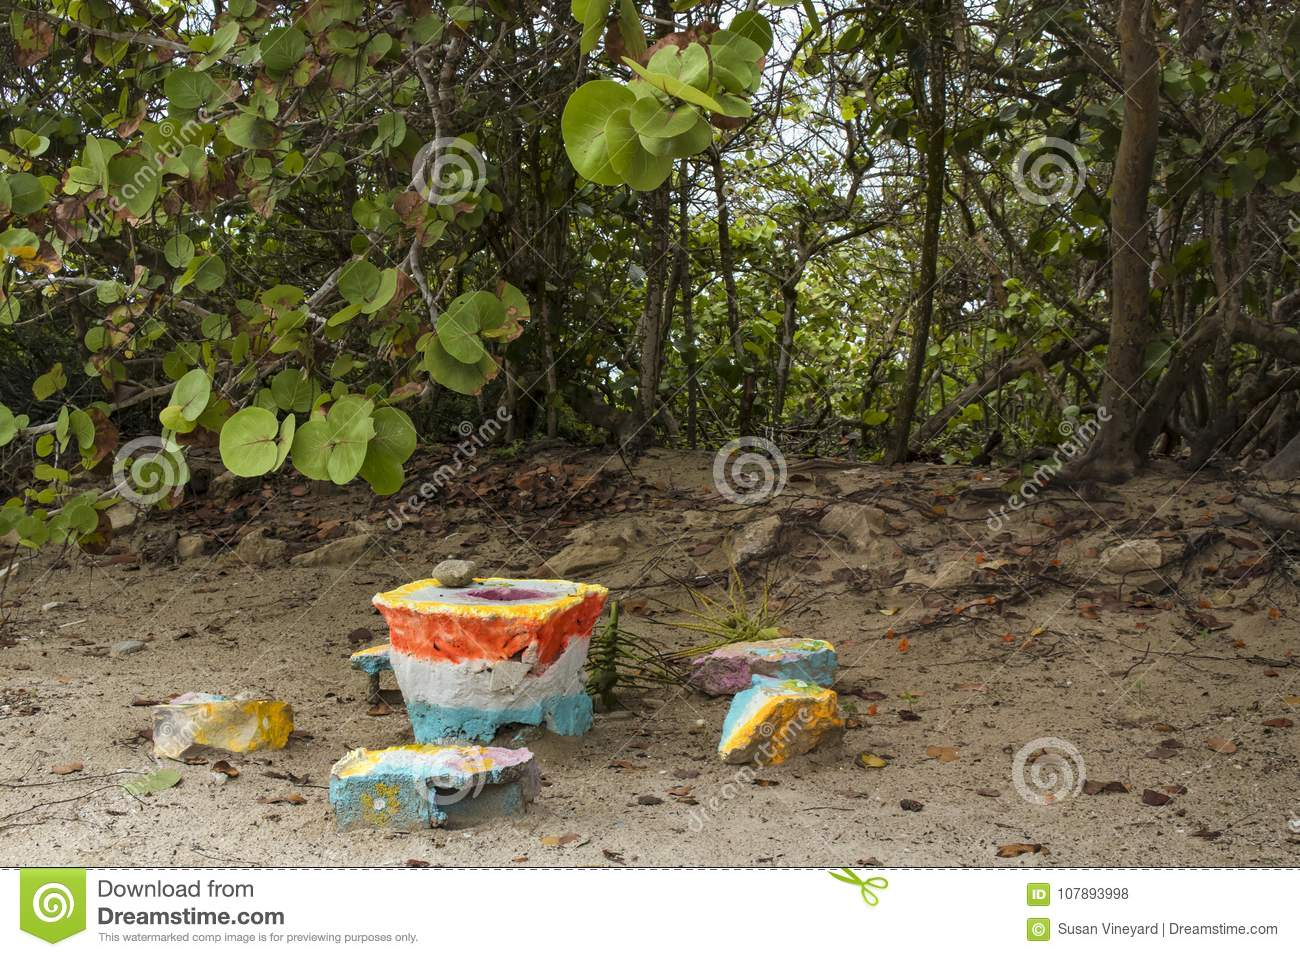 A grinding table with stone grinder made out of brightly painted pieces of concrete and rocks by the beach and tro